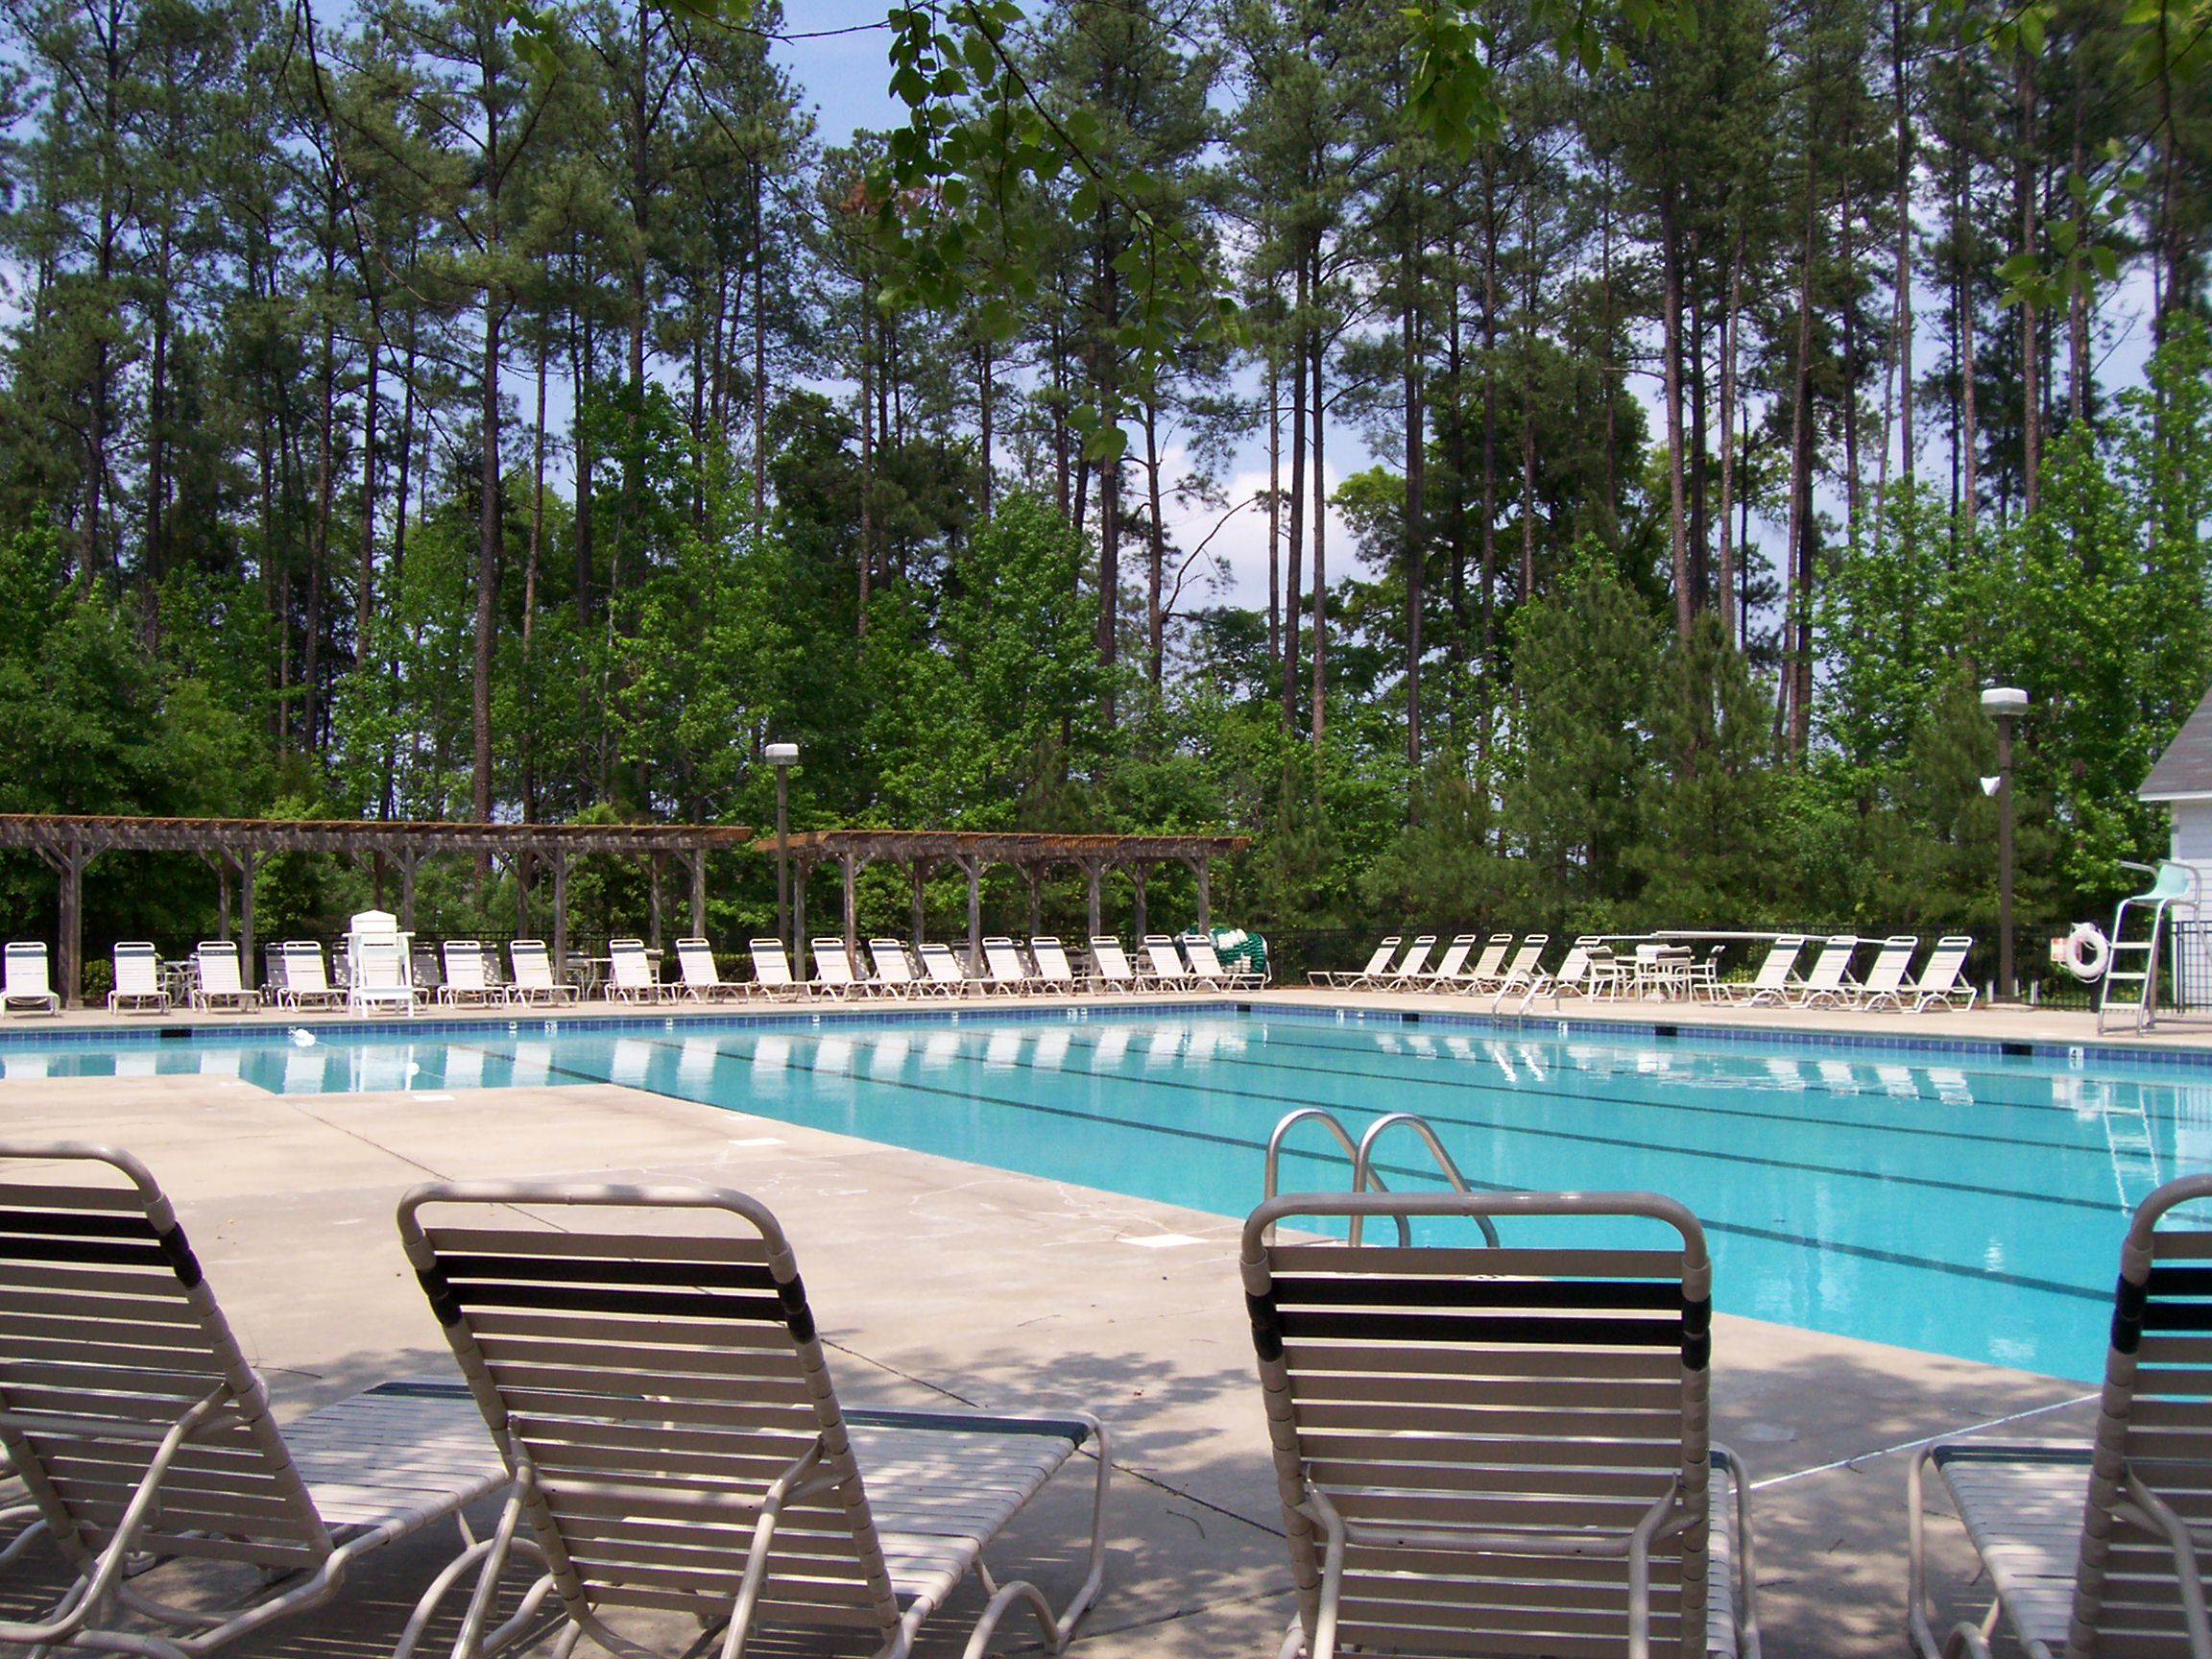 Highland Creek Highland Creek Is A Community That Provides A Variety Of Home Styles And An